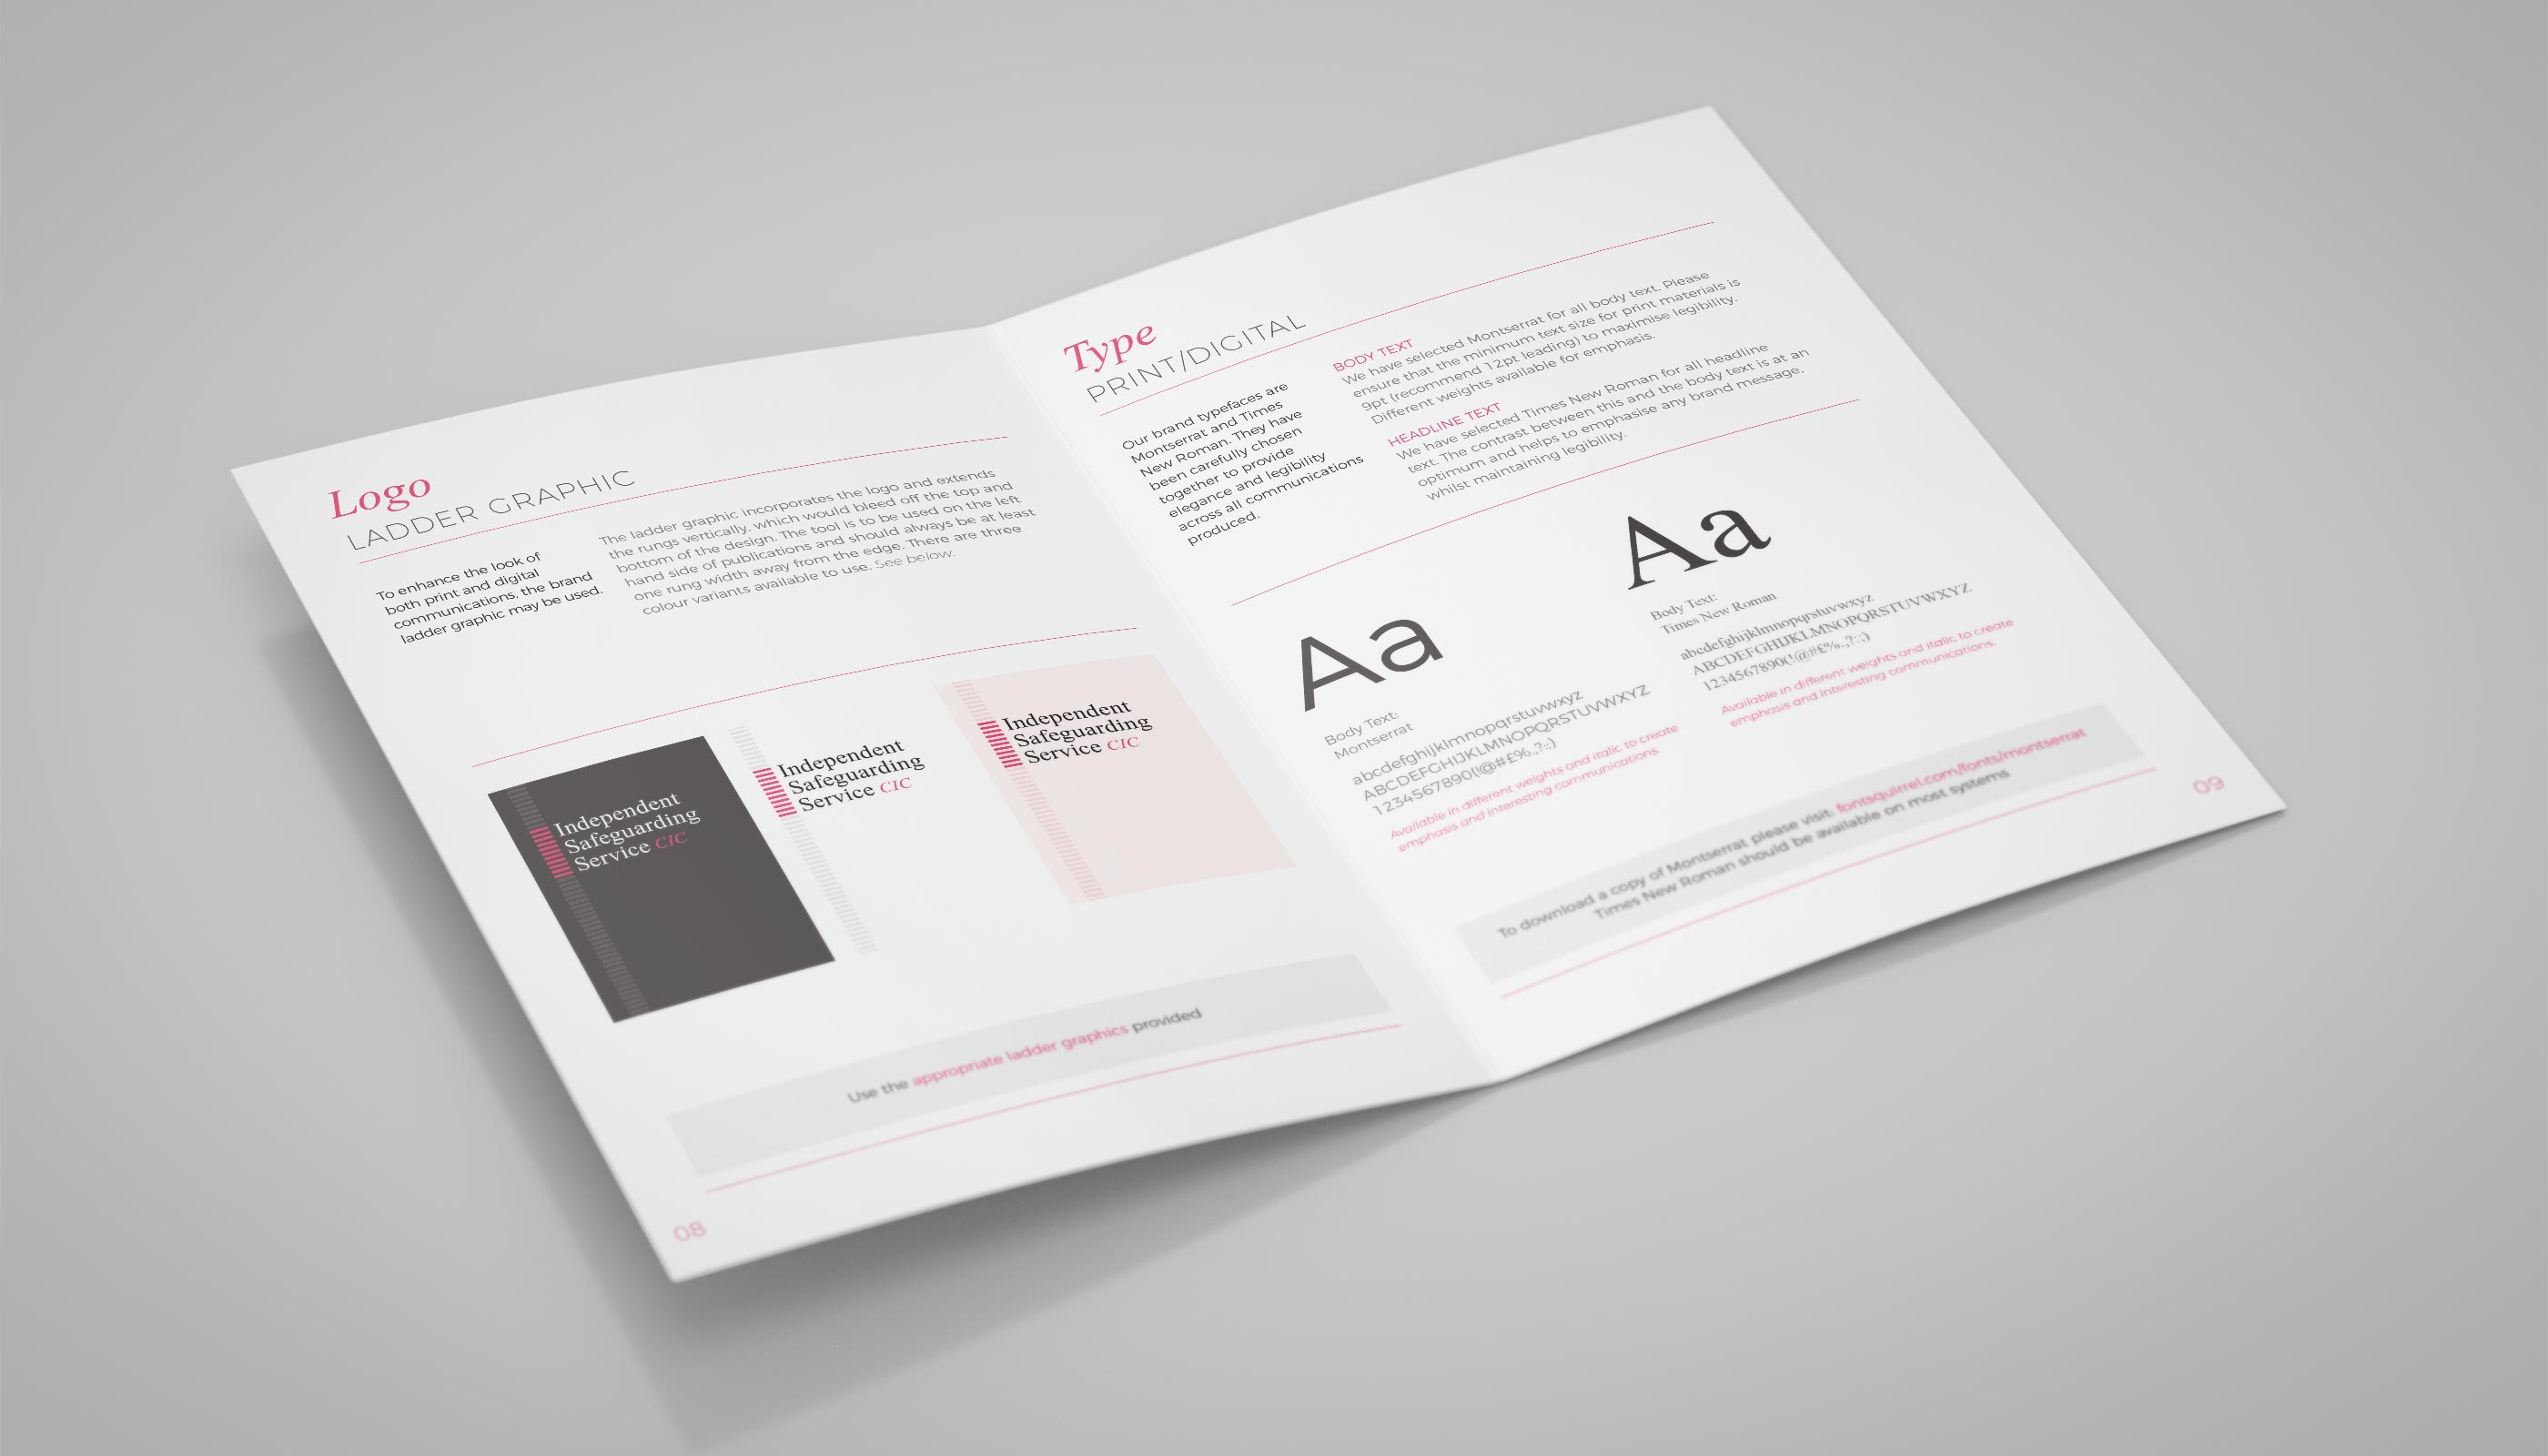 Brand Guidelines design for Independent Safeguarding Service CIC, in London.